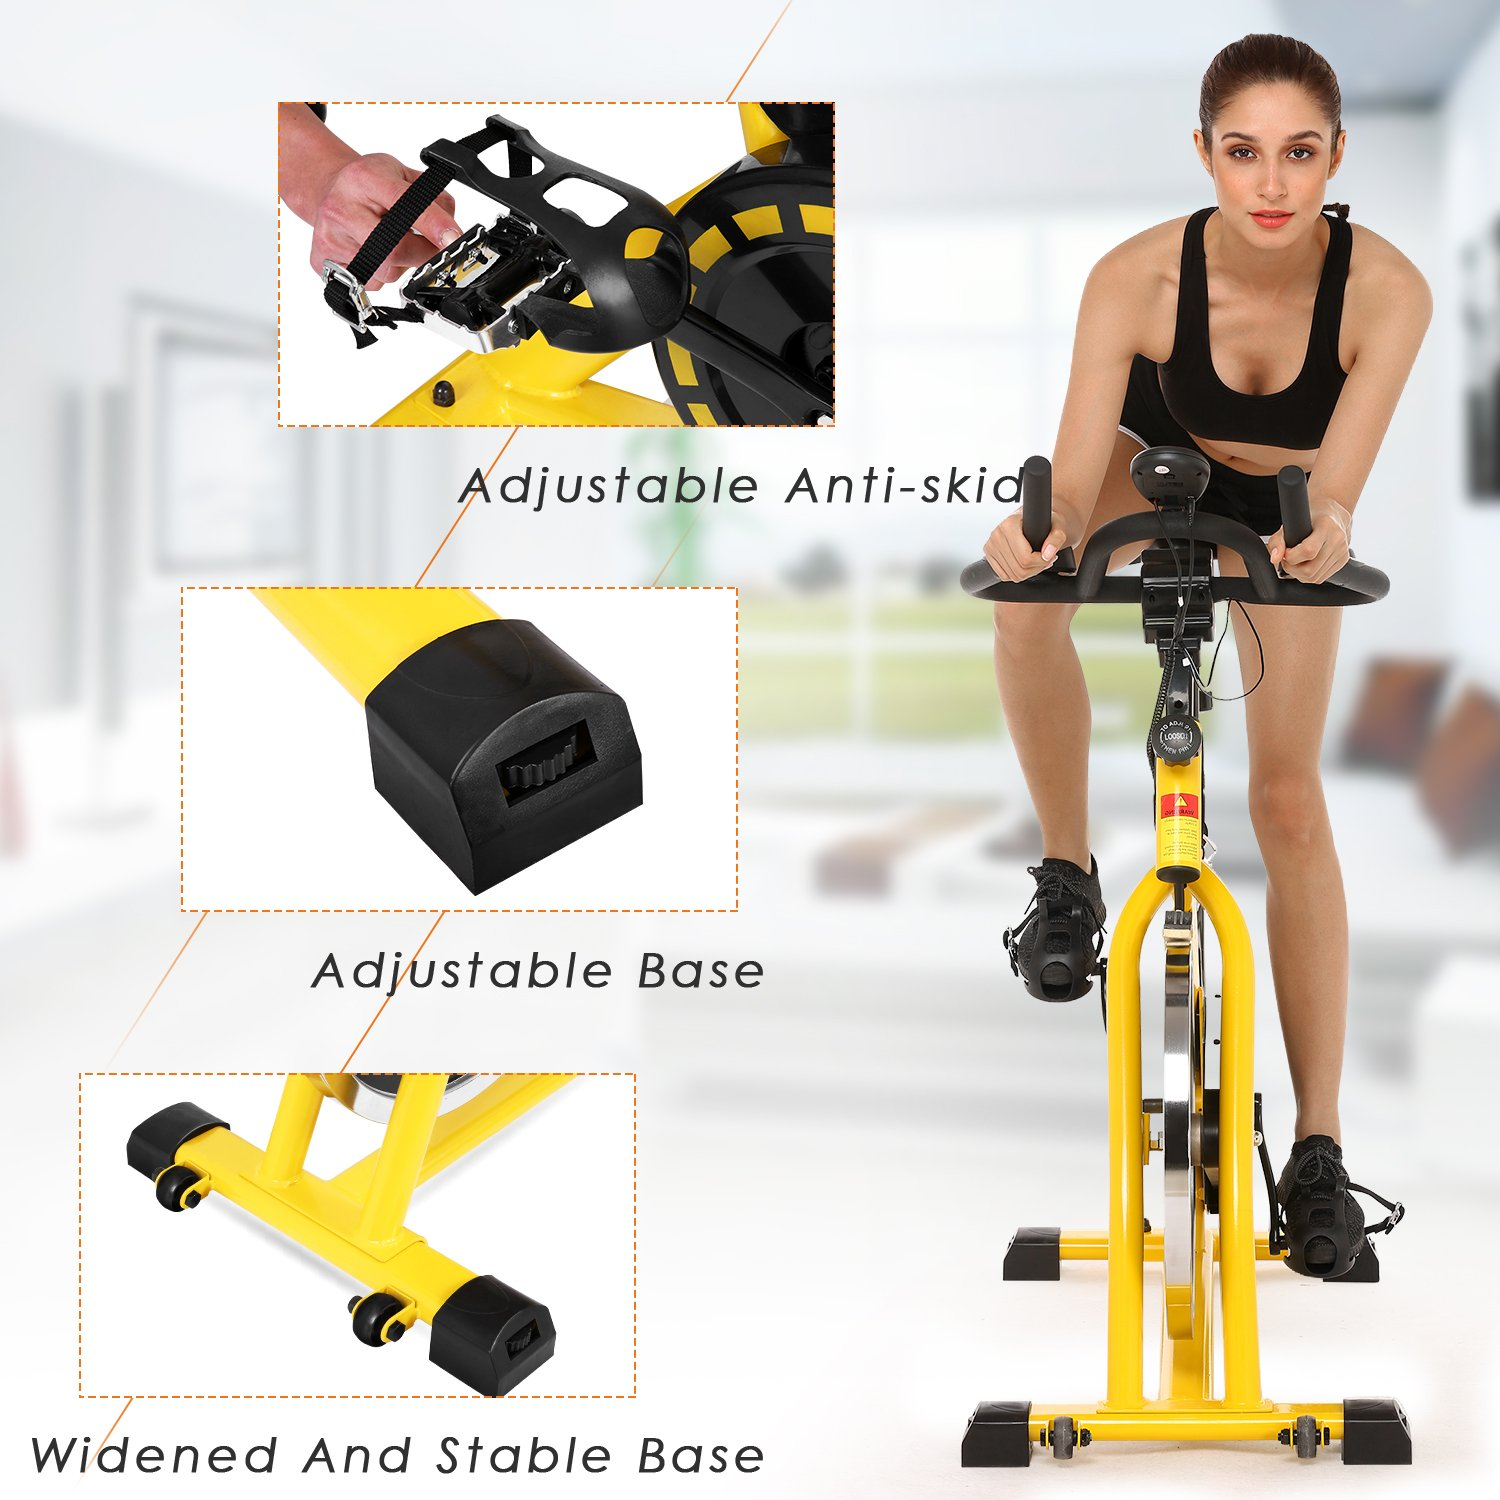 ANCHEER Stationary Bike, 40 LBS Flywheel Belt Drive Indoor Cycling Exercise Bike with Pulse, Elbow Tray (Model: ANCHEER-A5001) (Yellow) by ANCHEER (Image #7)